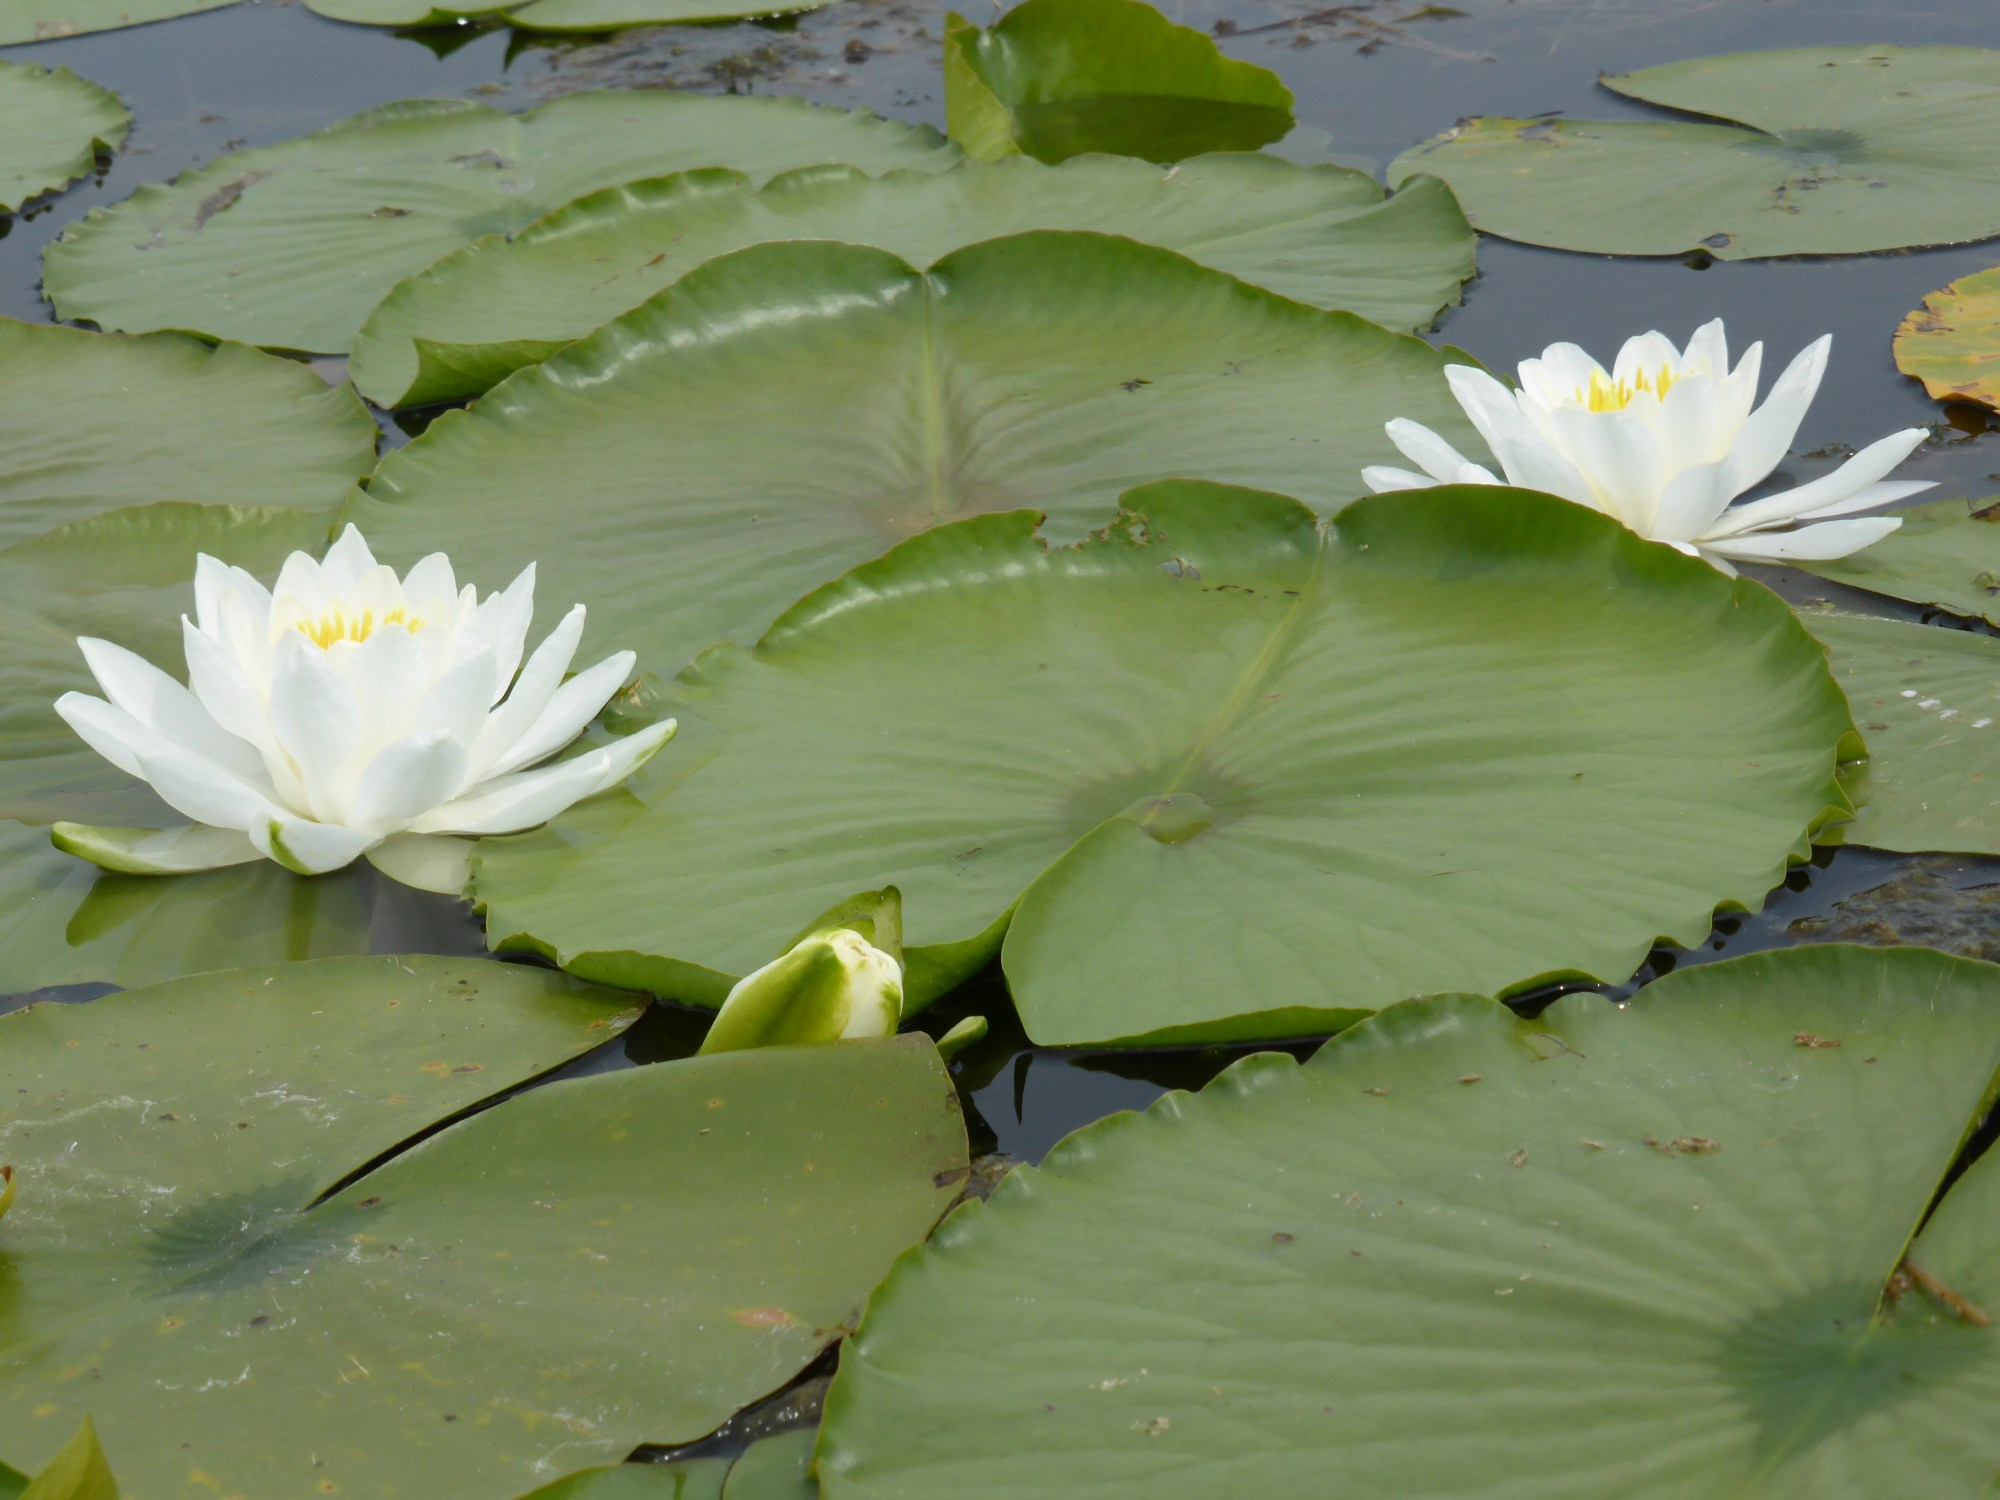 hight resolution of lily pads